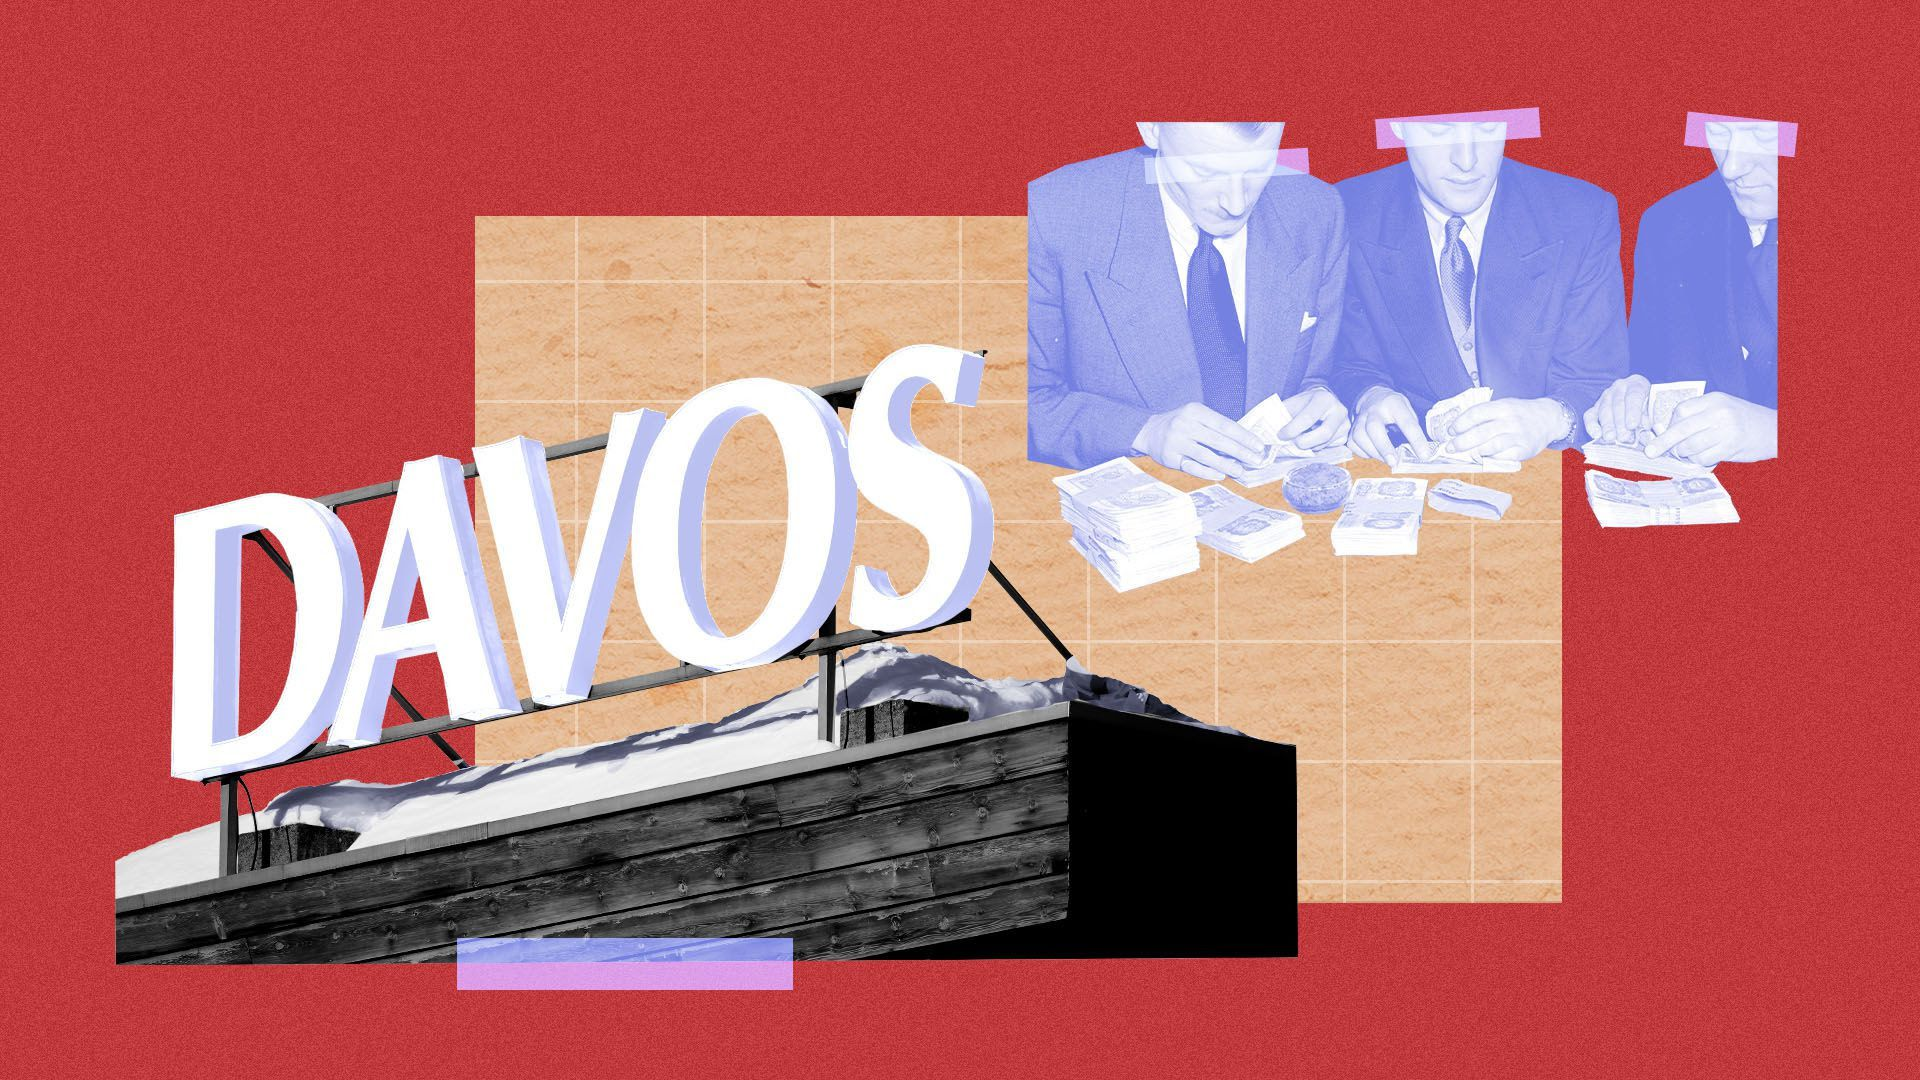 Media coverage of Davos portrays more conference rhetoric than reality